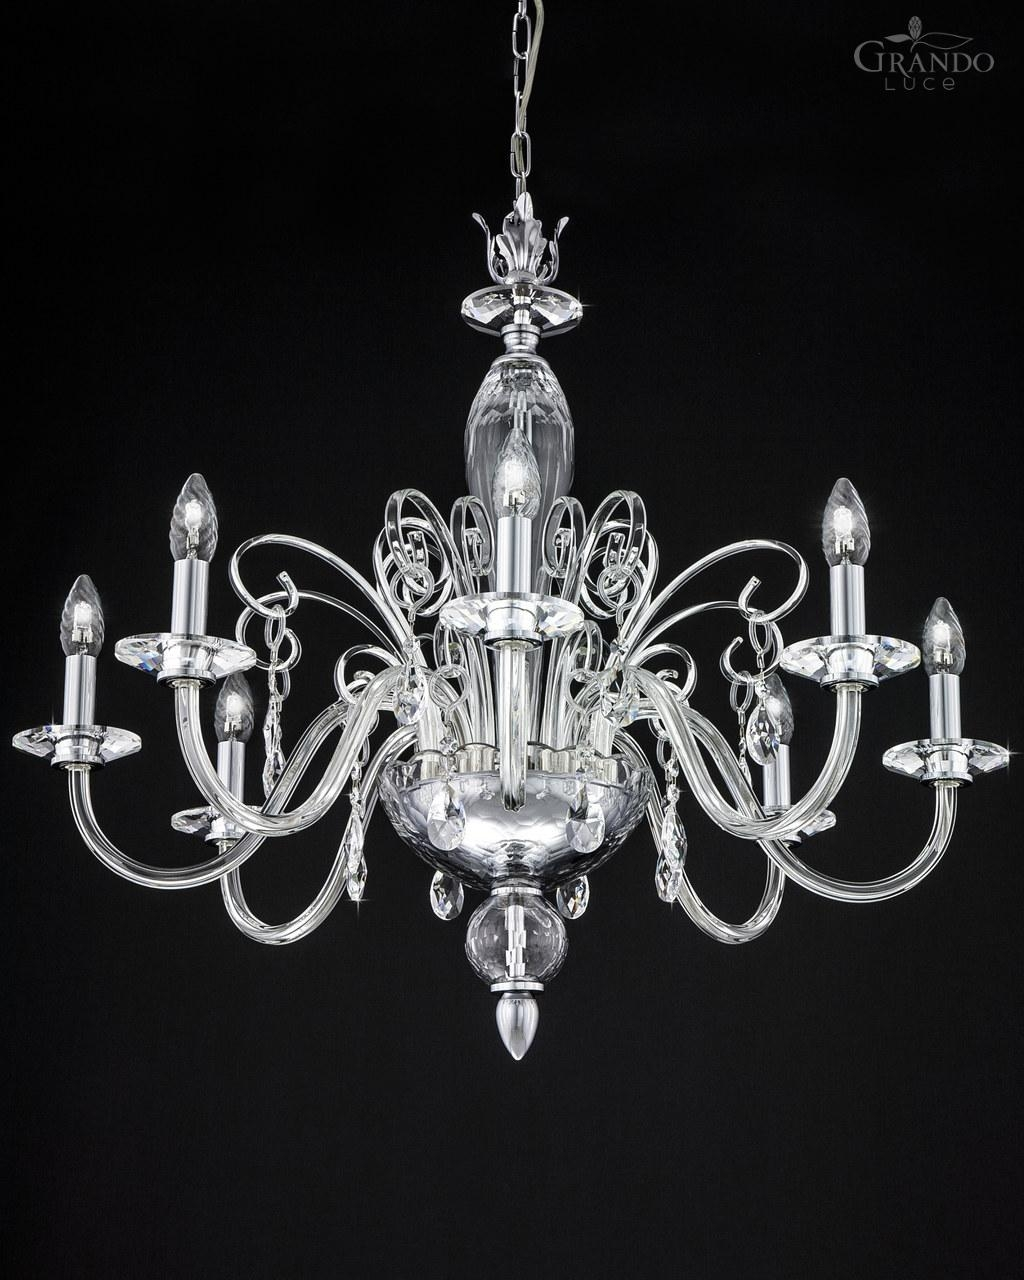 1208 Ch Chrome Crystal Chandelier With Swarovski Elements For Chrome Chandeliers (Image 3 of 15)